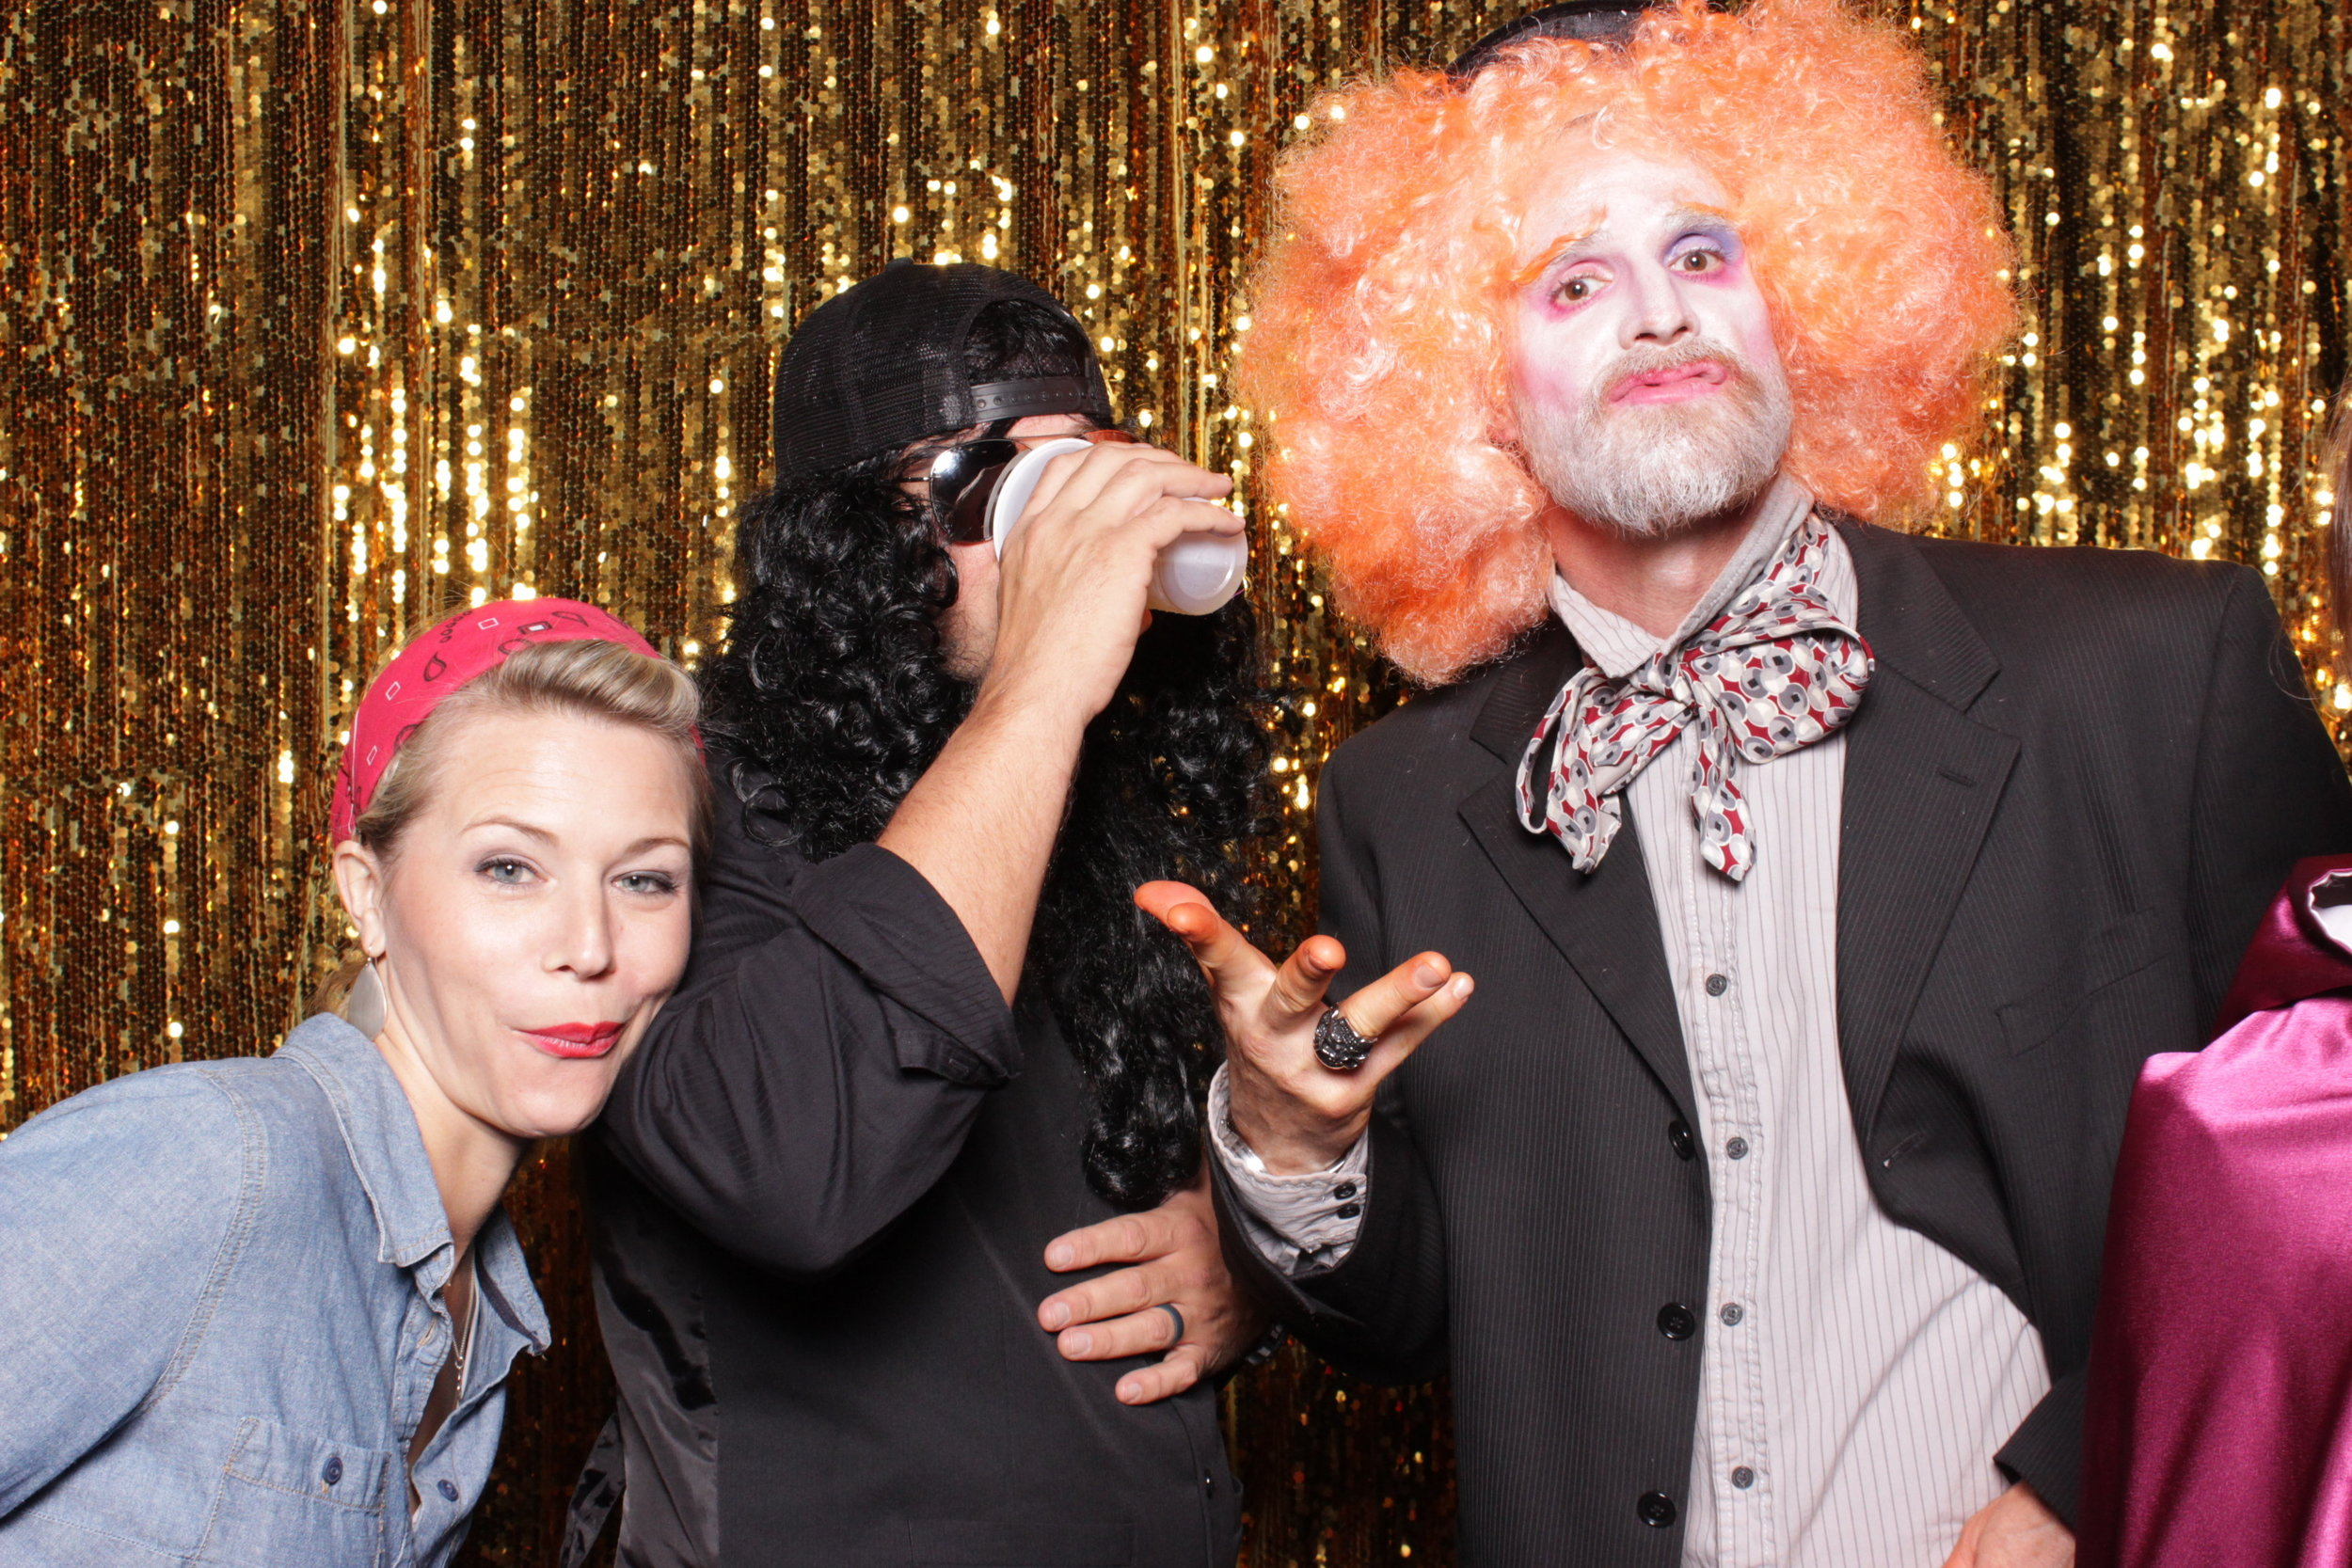 Chico-photo-booth-rental-pictures